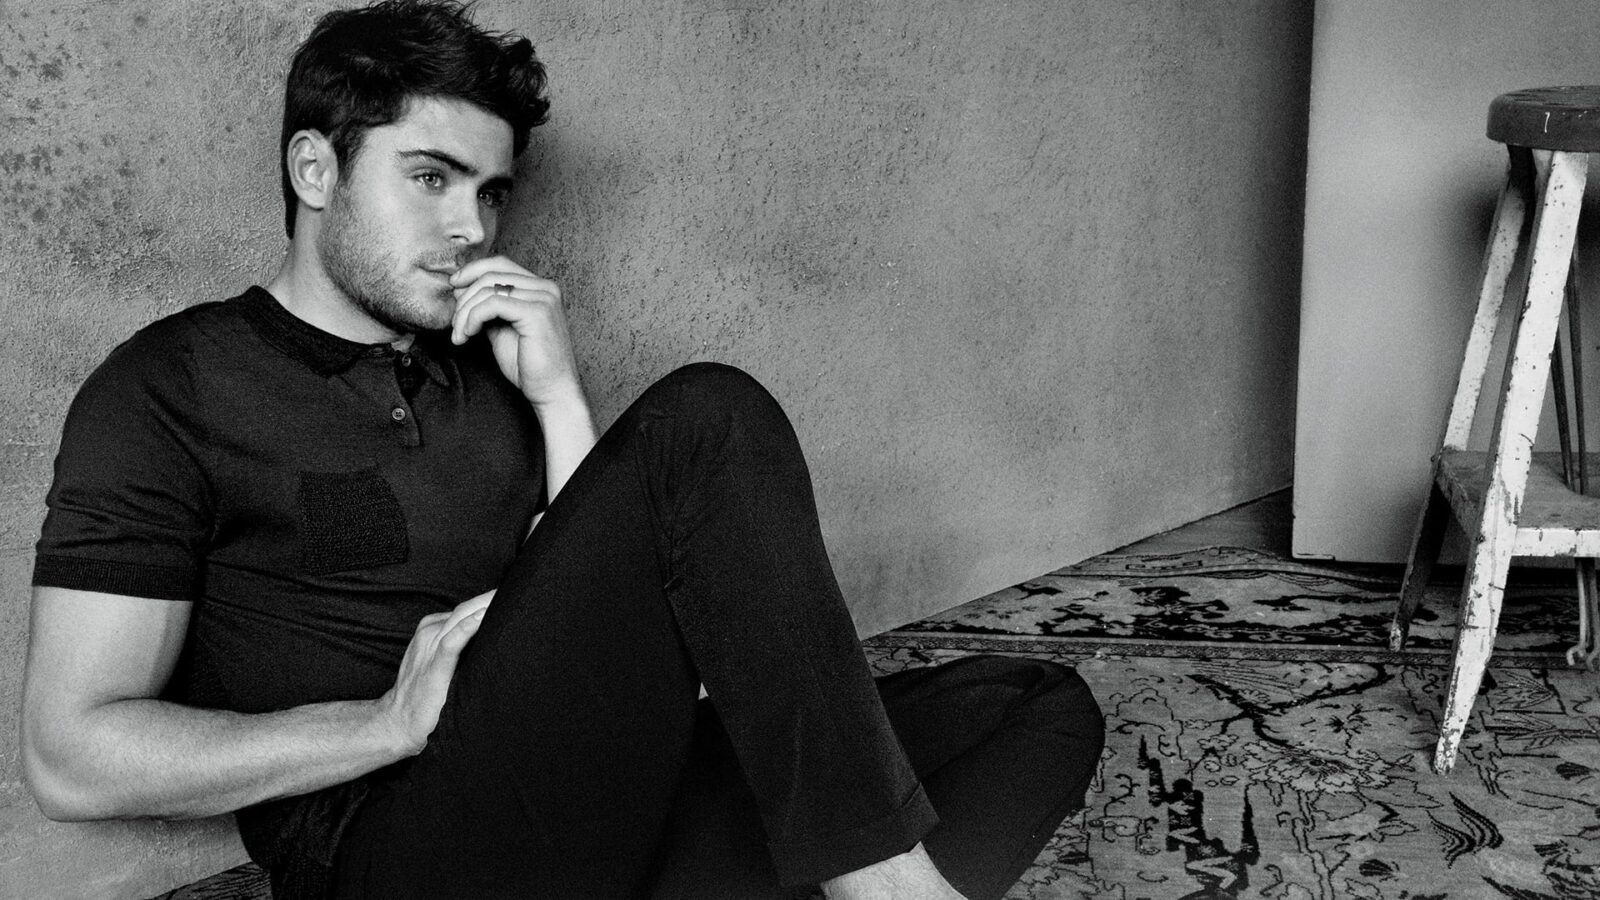 zac efron hd wallpapers free download